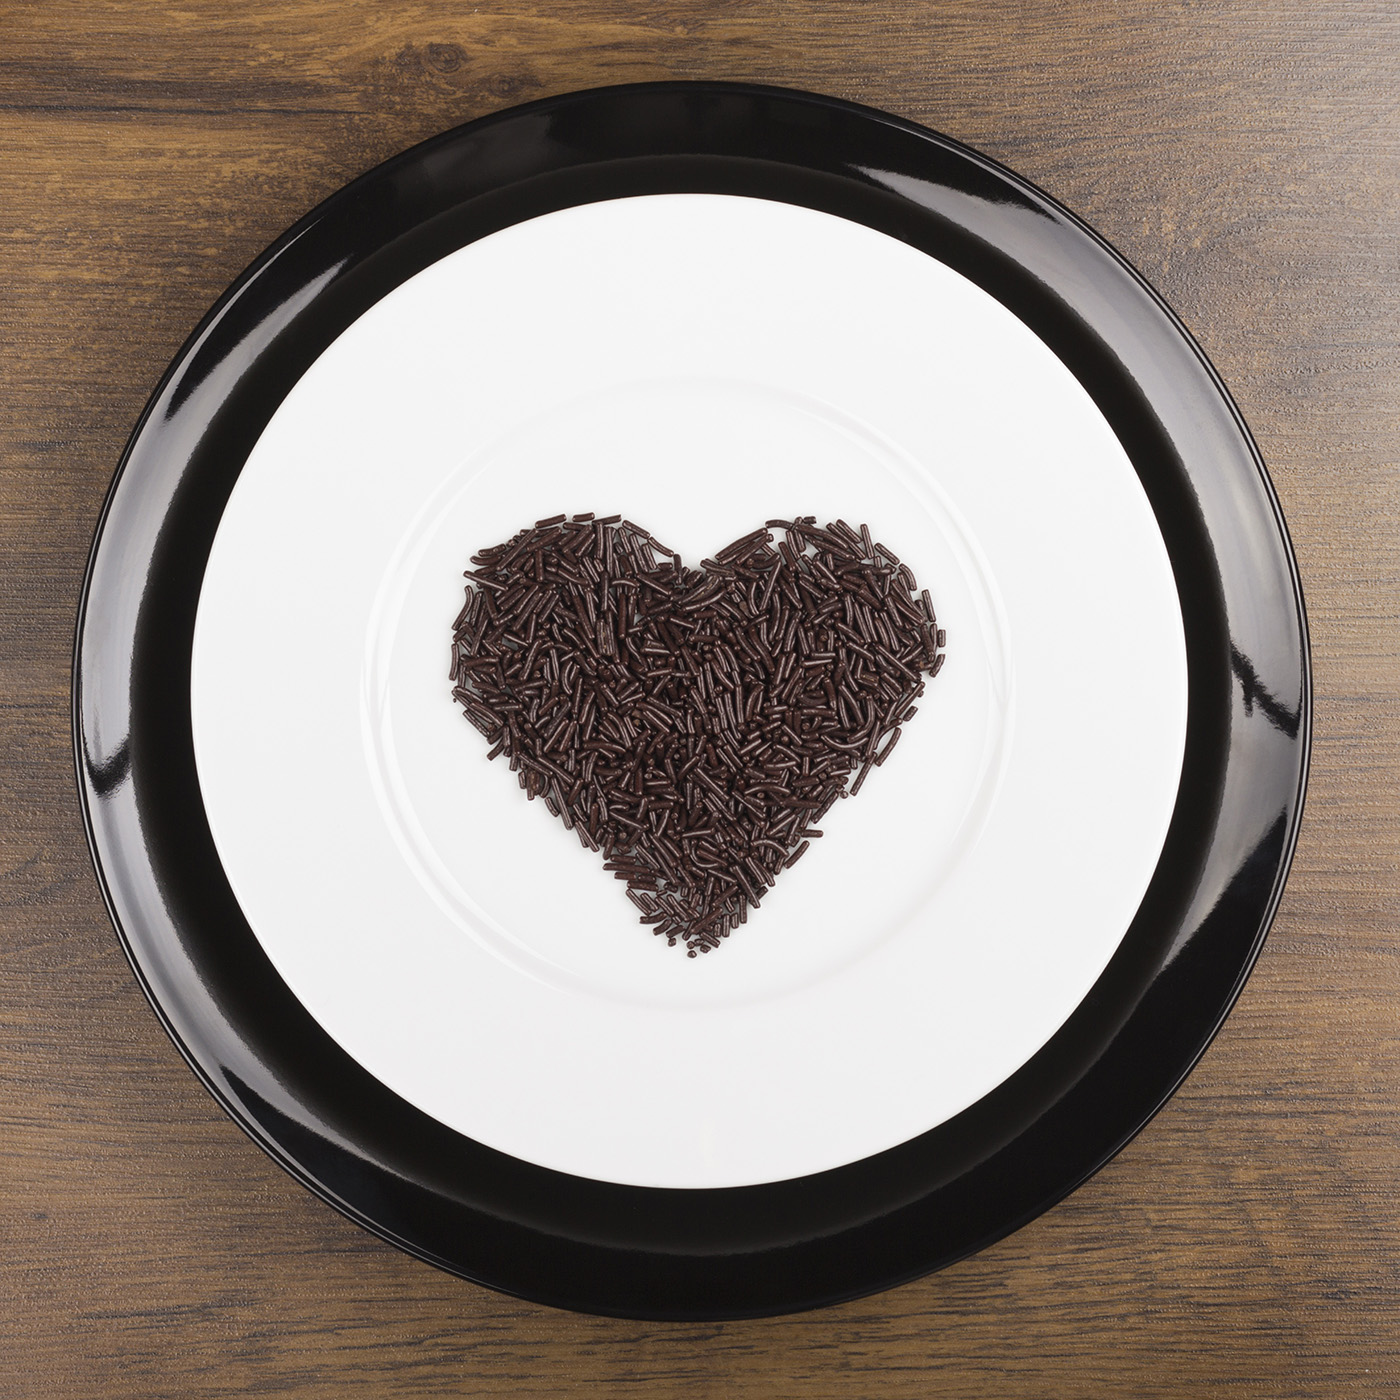 In a heart-shaped chocolate dish 50105